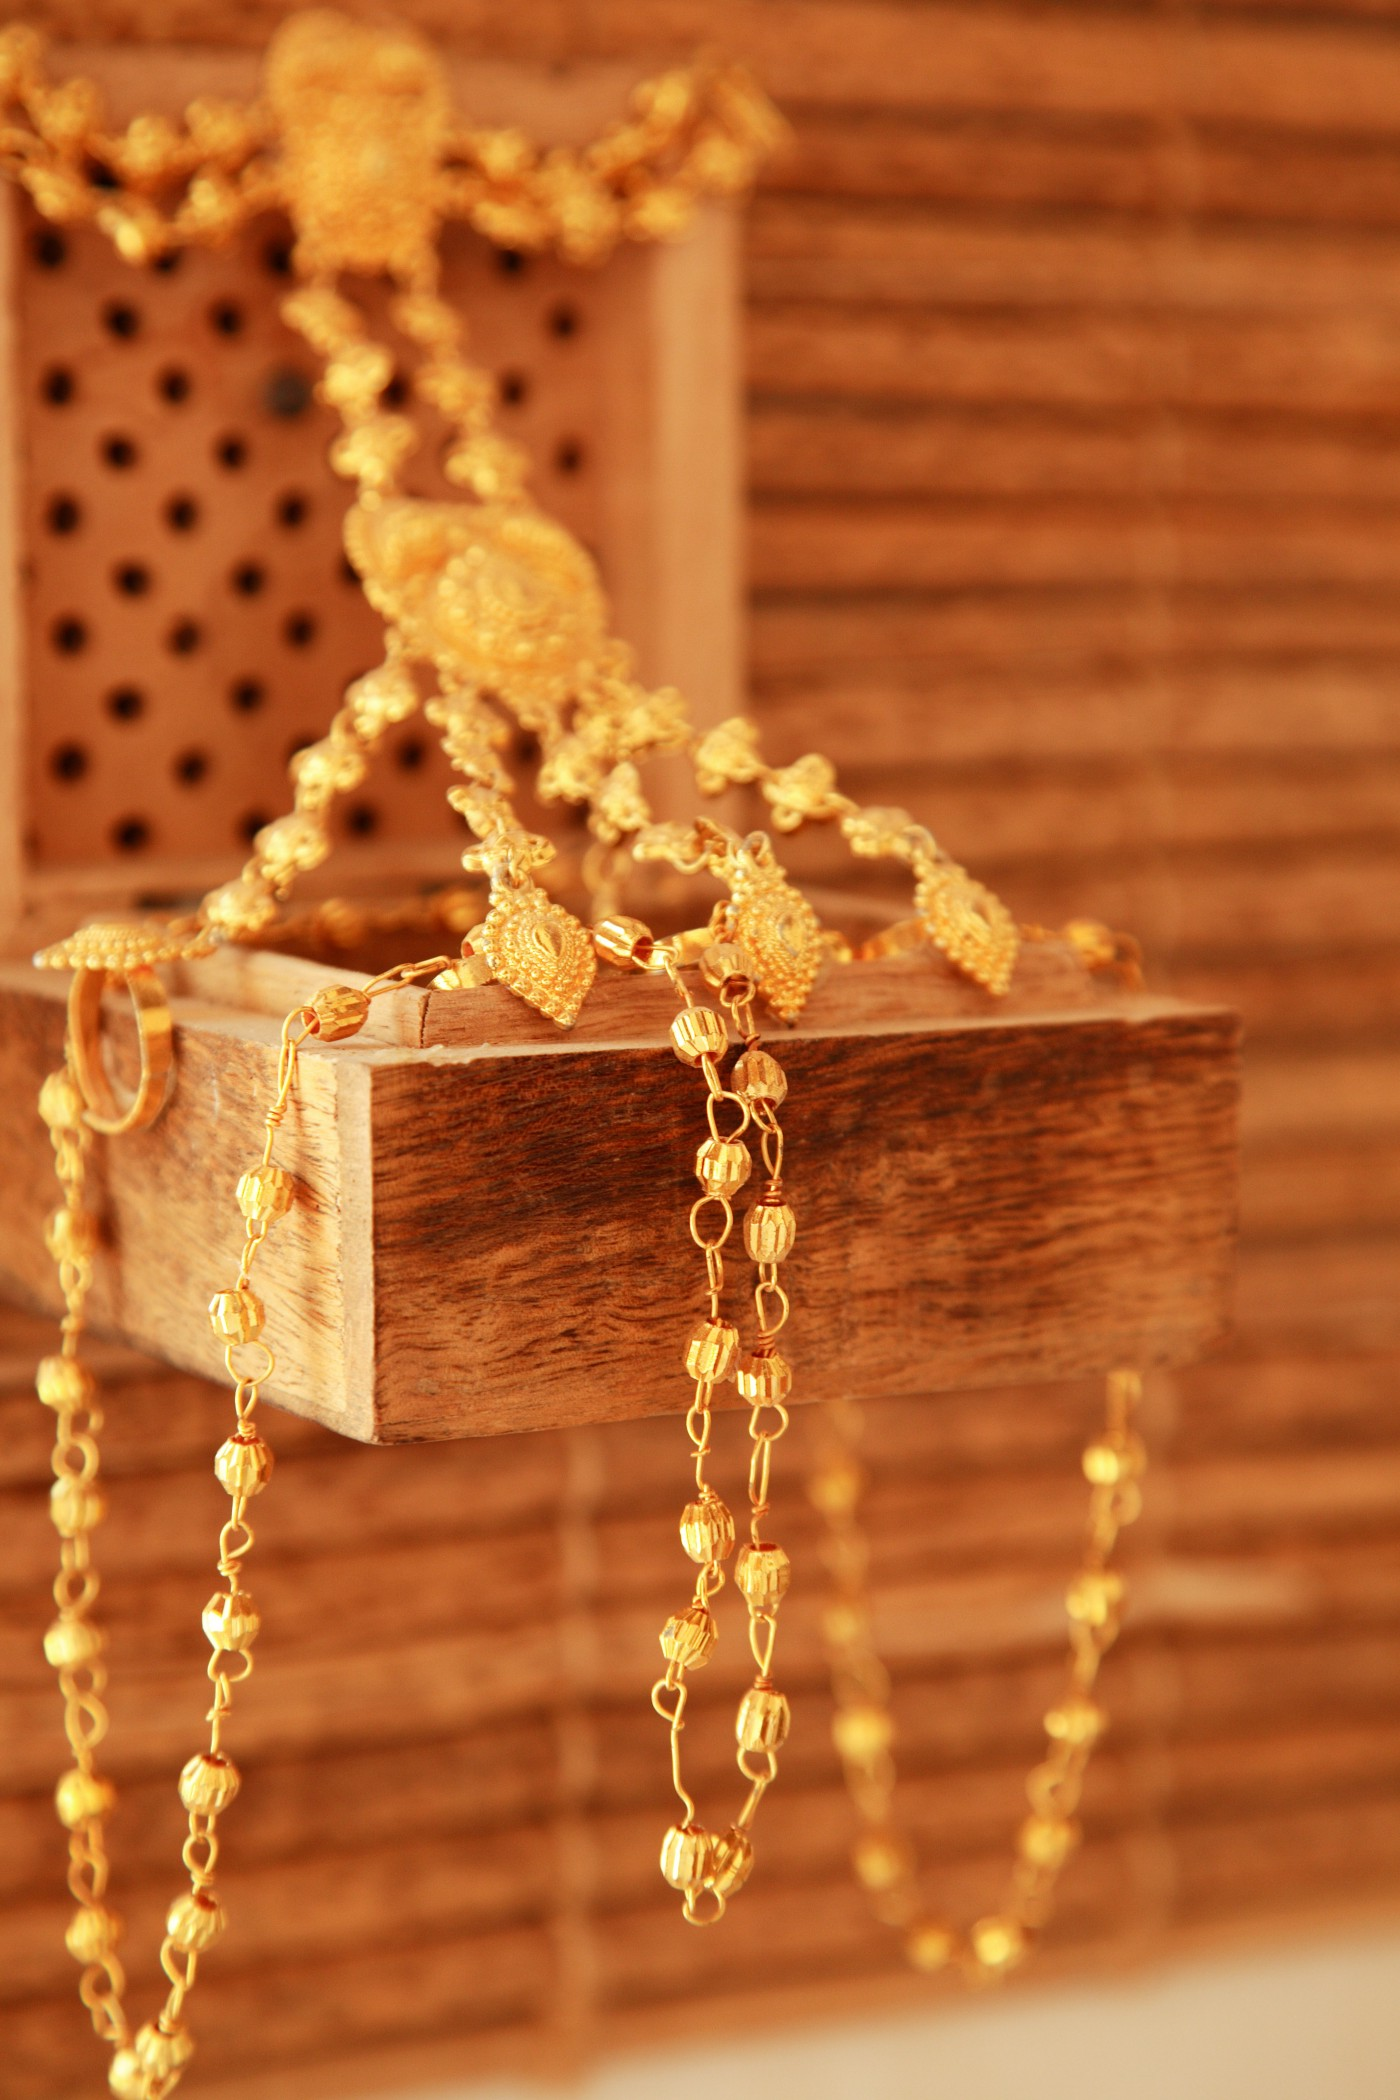 the image is that of a jewelry box built into a board wall with long gold pieces of necklaces draped all over.